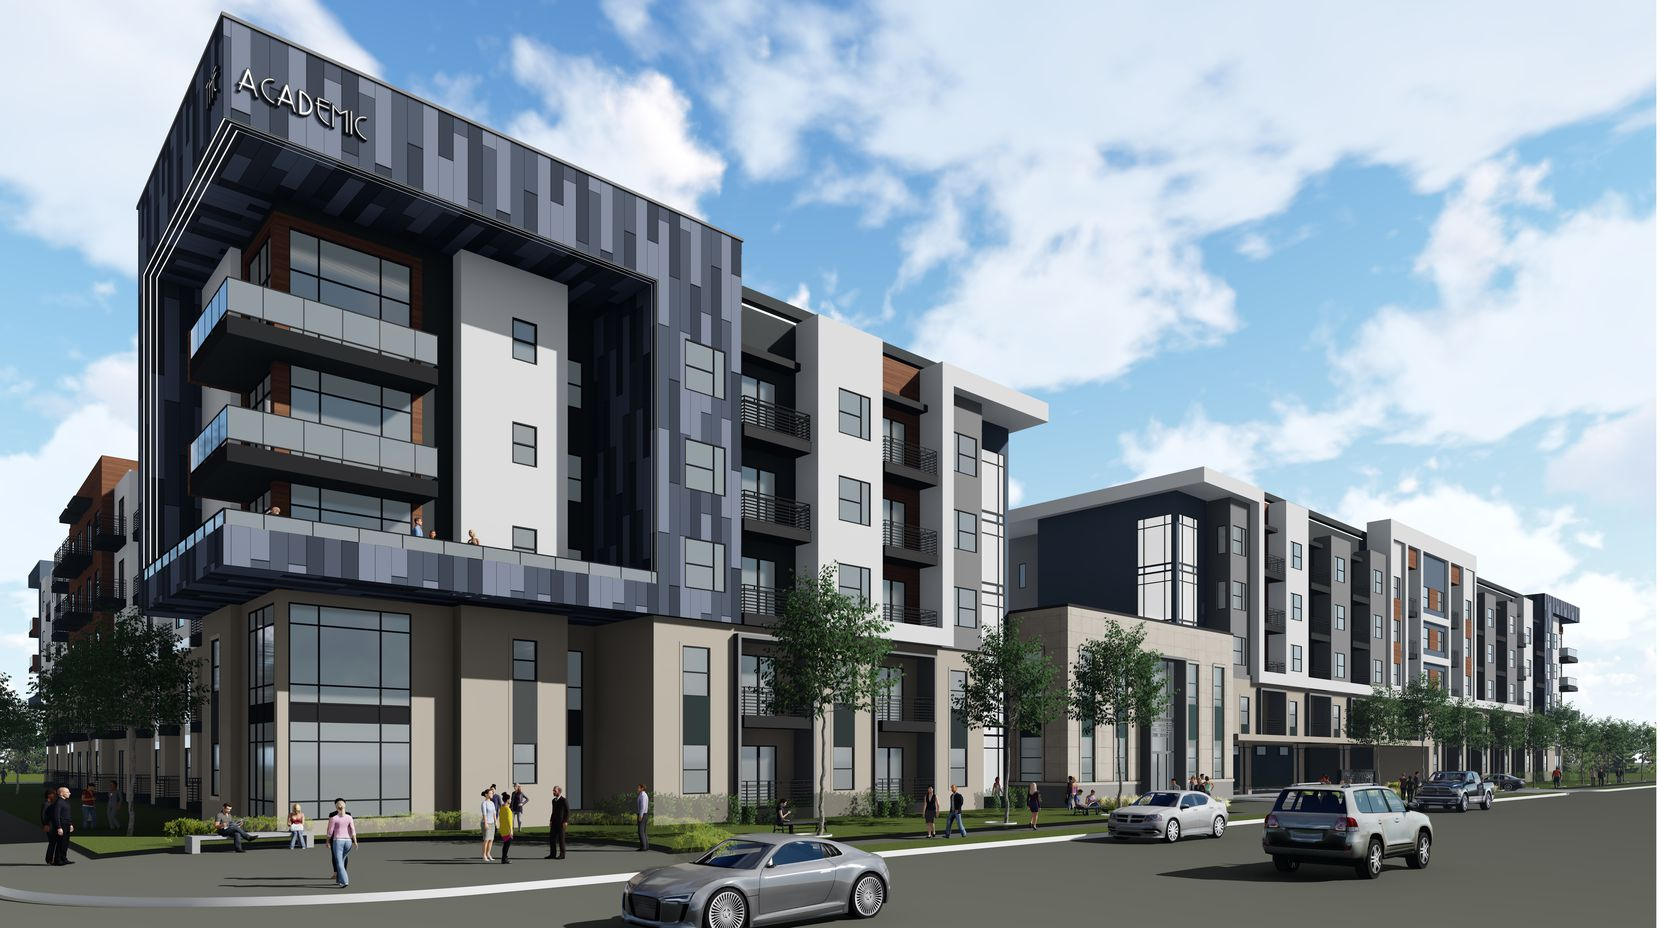 Leon Capital Group's Ross Avenue apartment development includes the 2-story centerpiece building from the old school district headquarters.